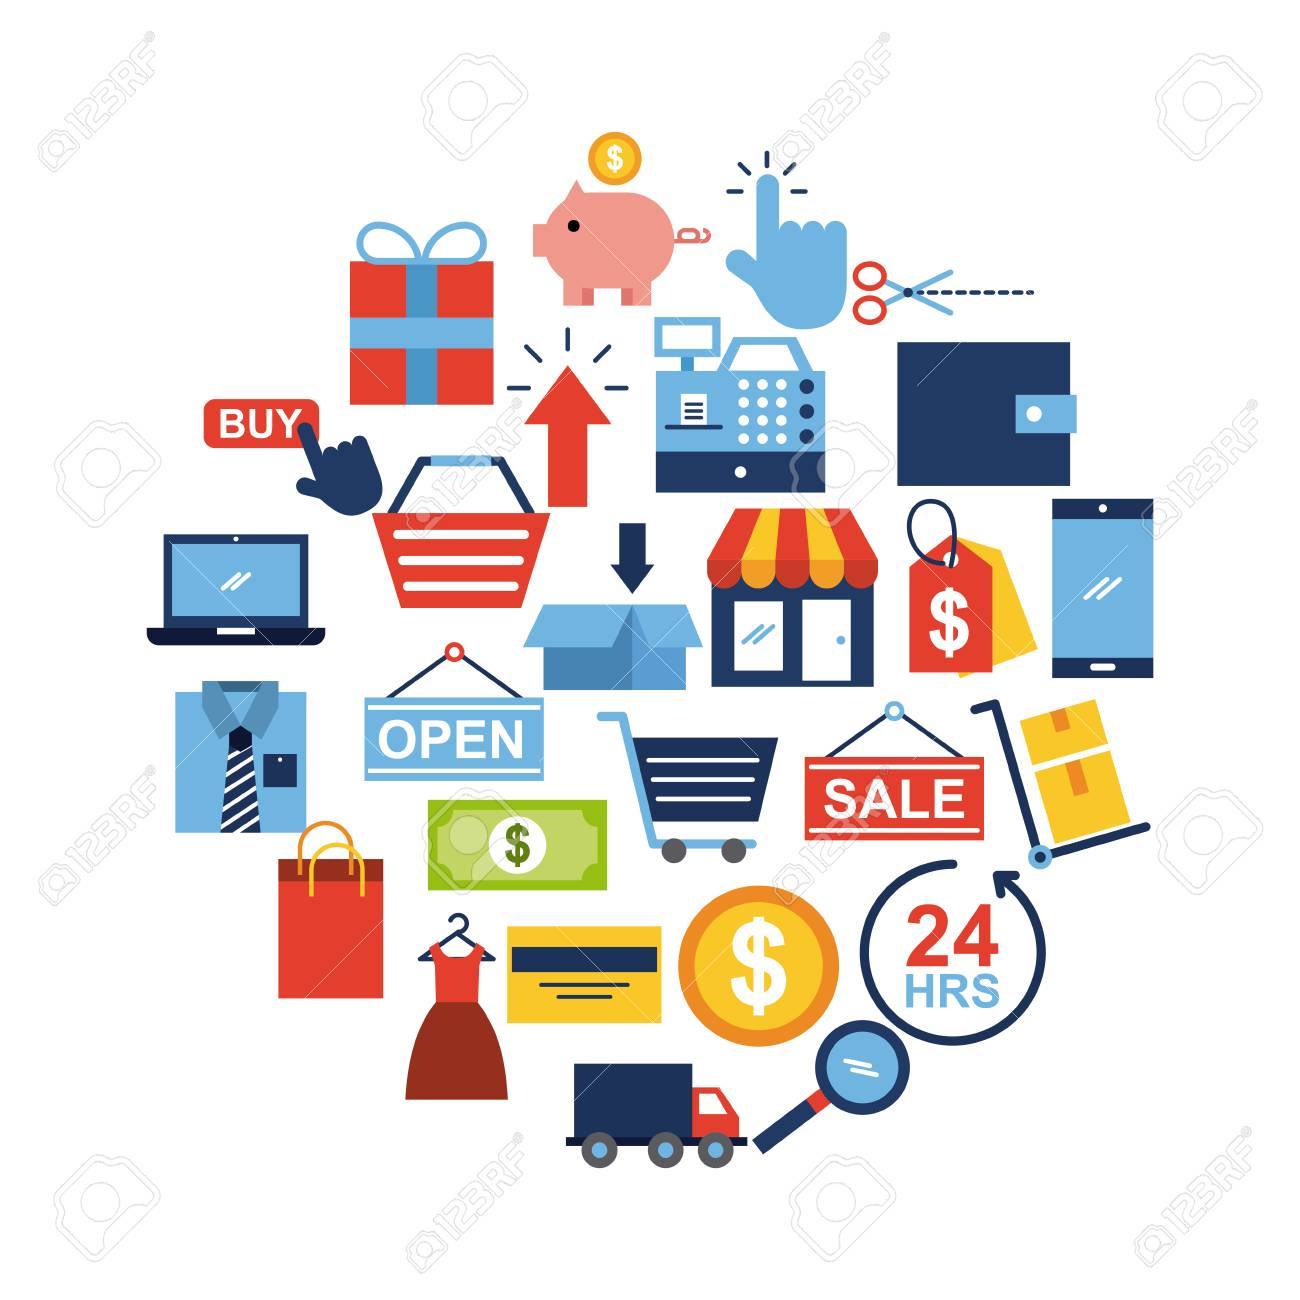 Online Shopping Icons Set Icon Vector Illustration Design Graphic Royalty  Free Cliparts, Vectors, And Stock Illustration. Image 79225065.